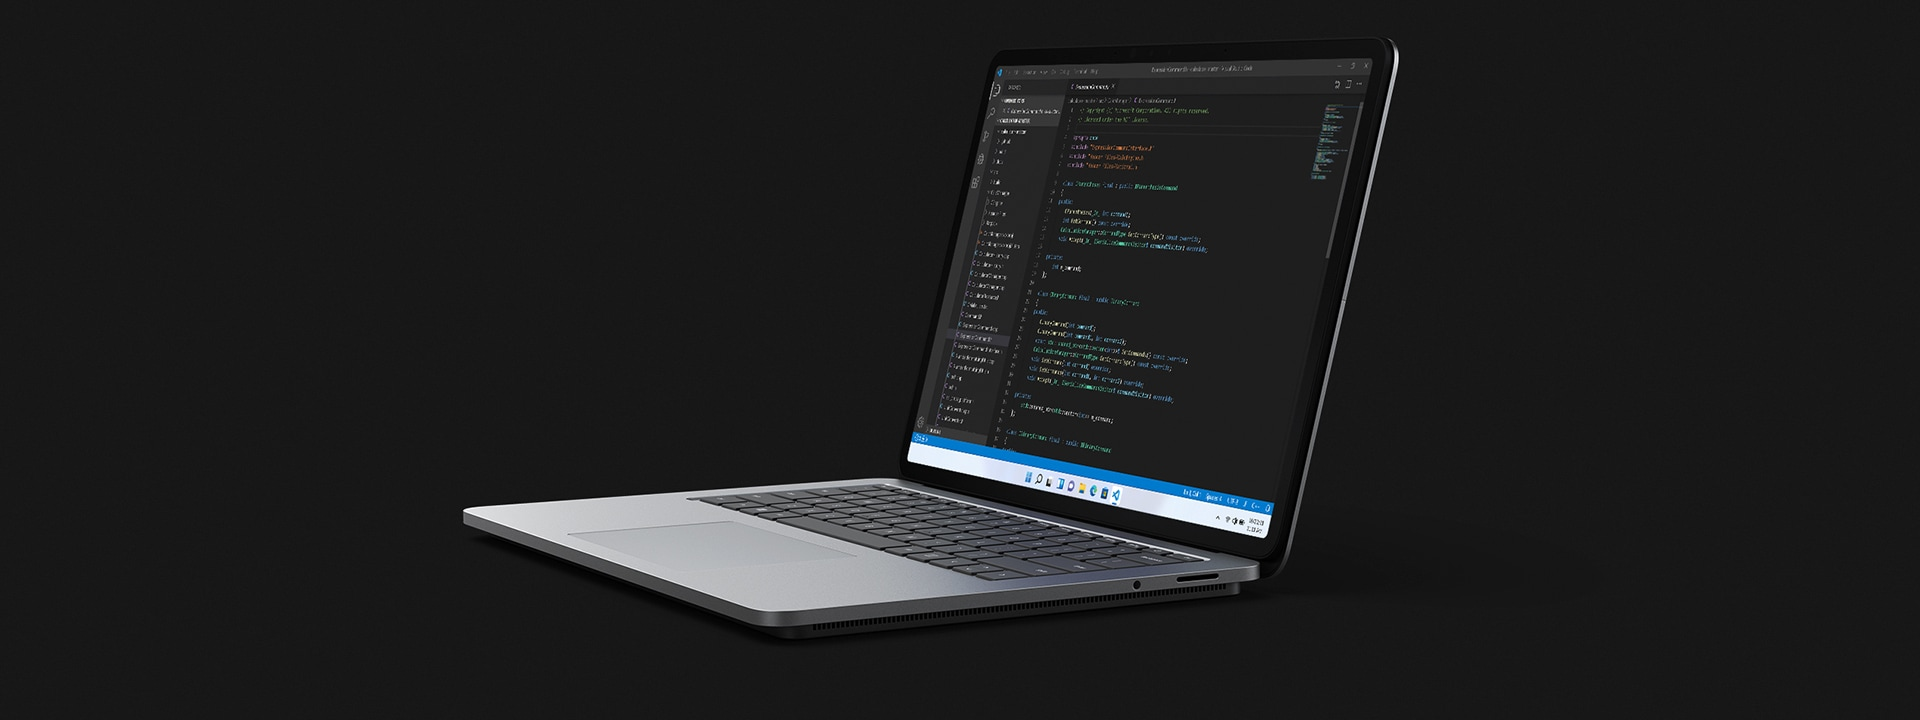 Surface Laptop Studio in laptop mode being used to code.